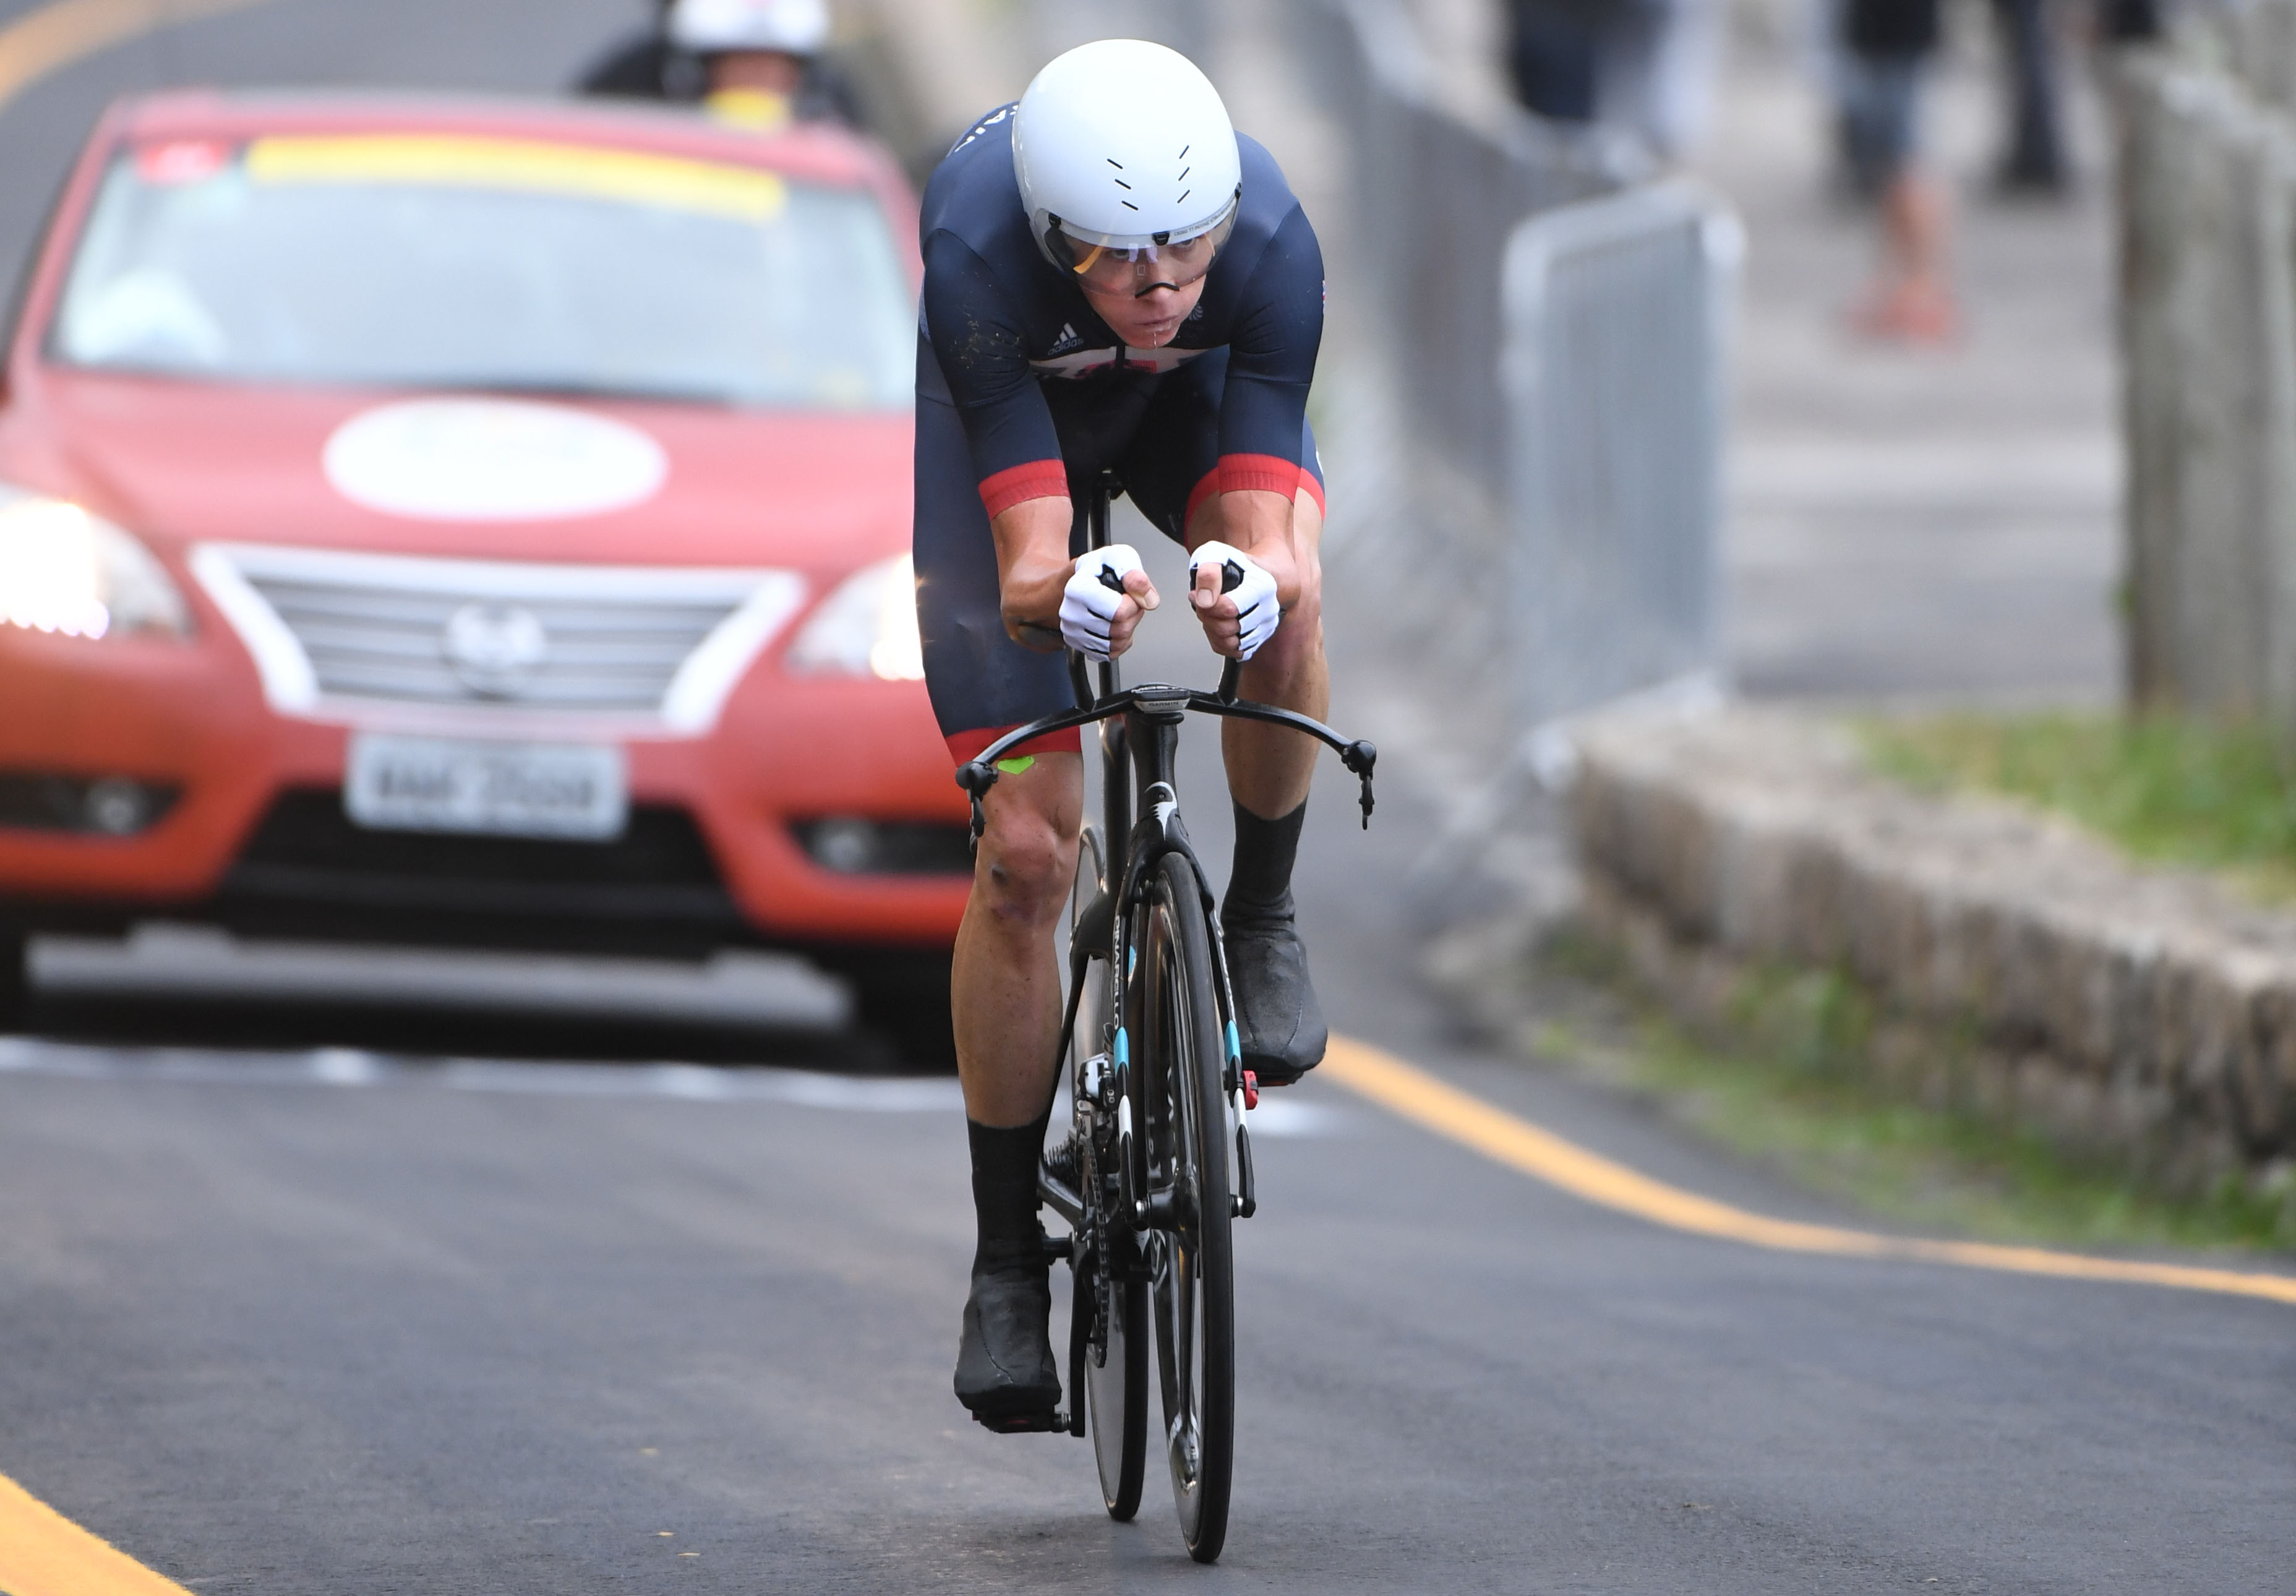 Chris Froome takes bronze in men's time trial as Fabian Cancellara wins gold